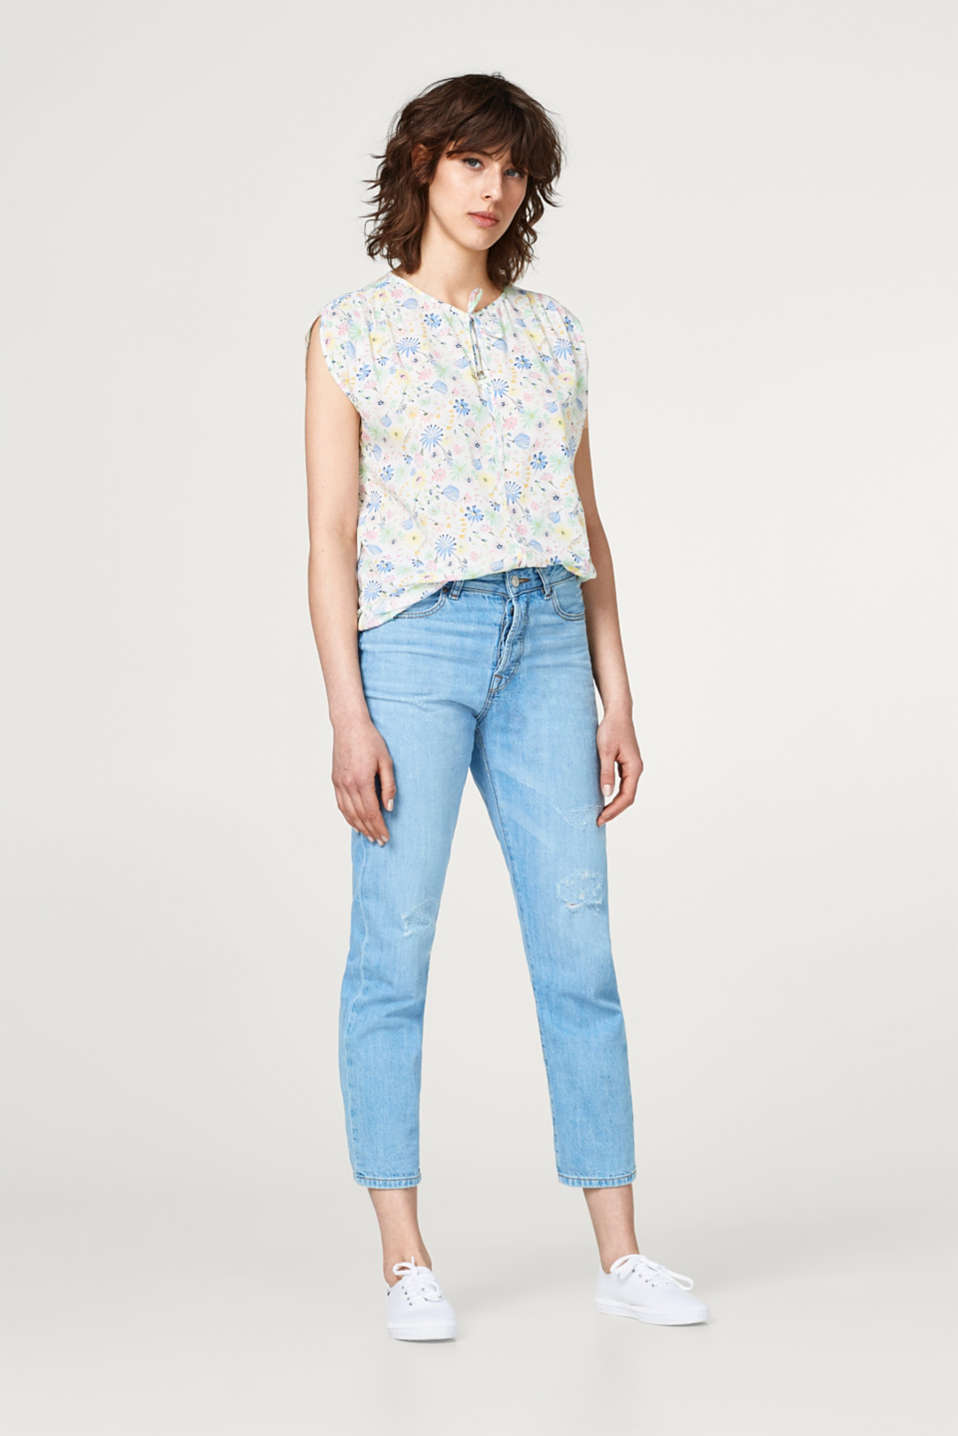 Blouse top with colourful floral print